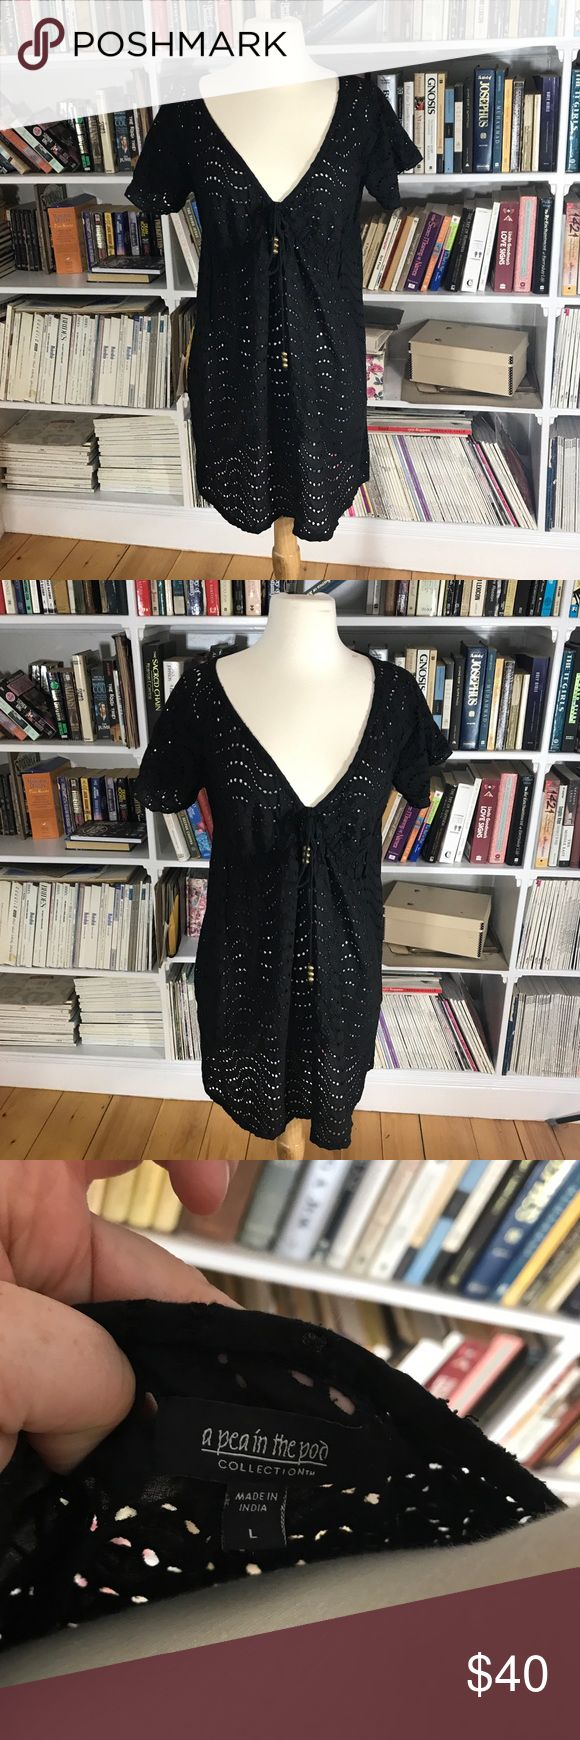 Pea In the Pod Maternity Swim Cover Up Black Pea In the Pod Maternity Swim Cover Up Black Crocheted eyelet design! Gorgeous! A Pea in the Pod Swim Coverups